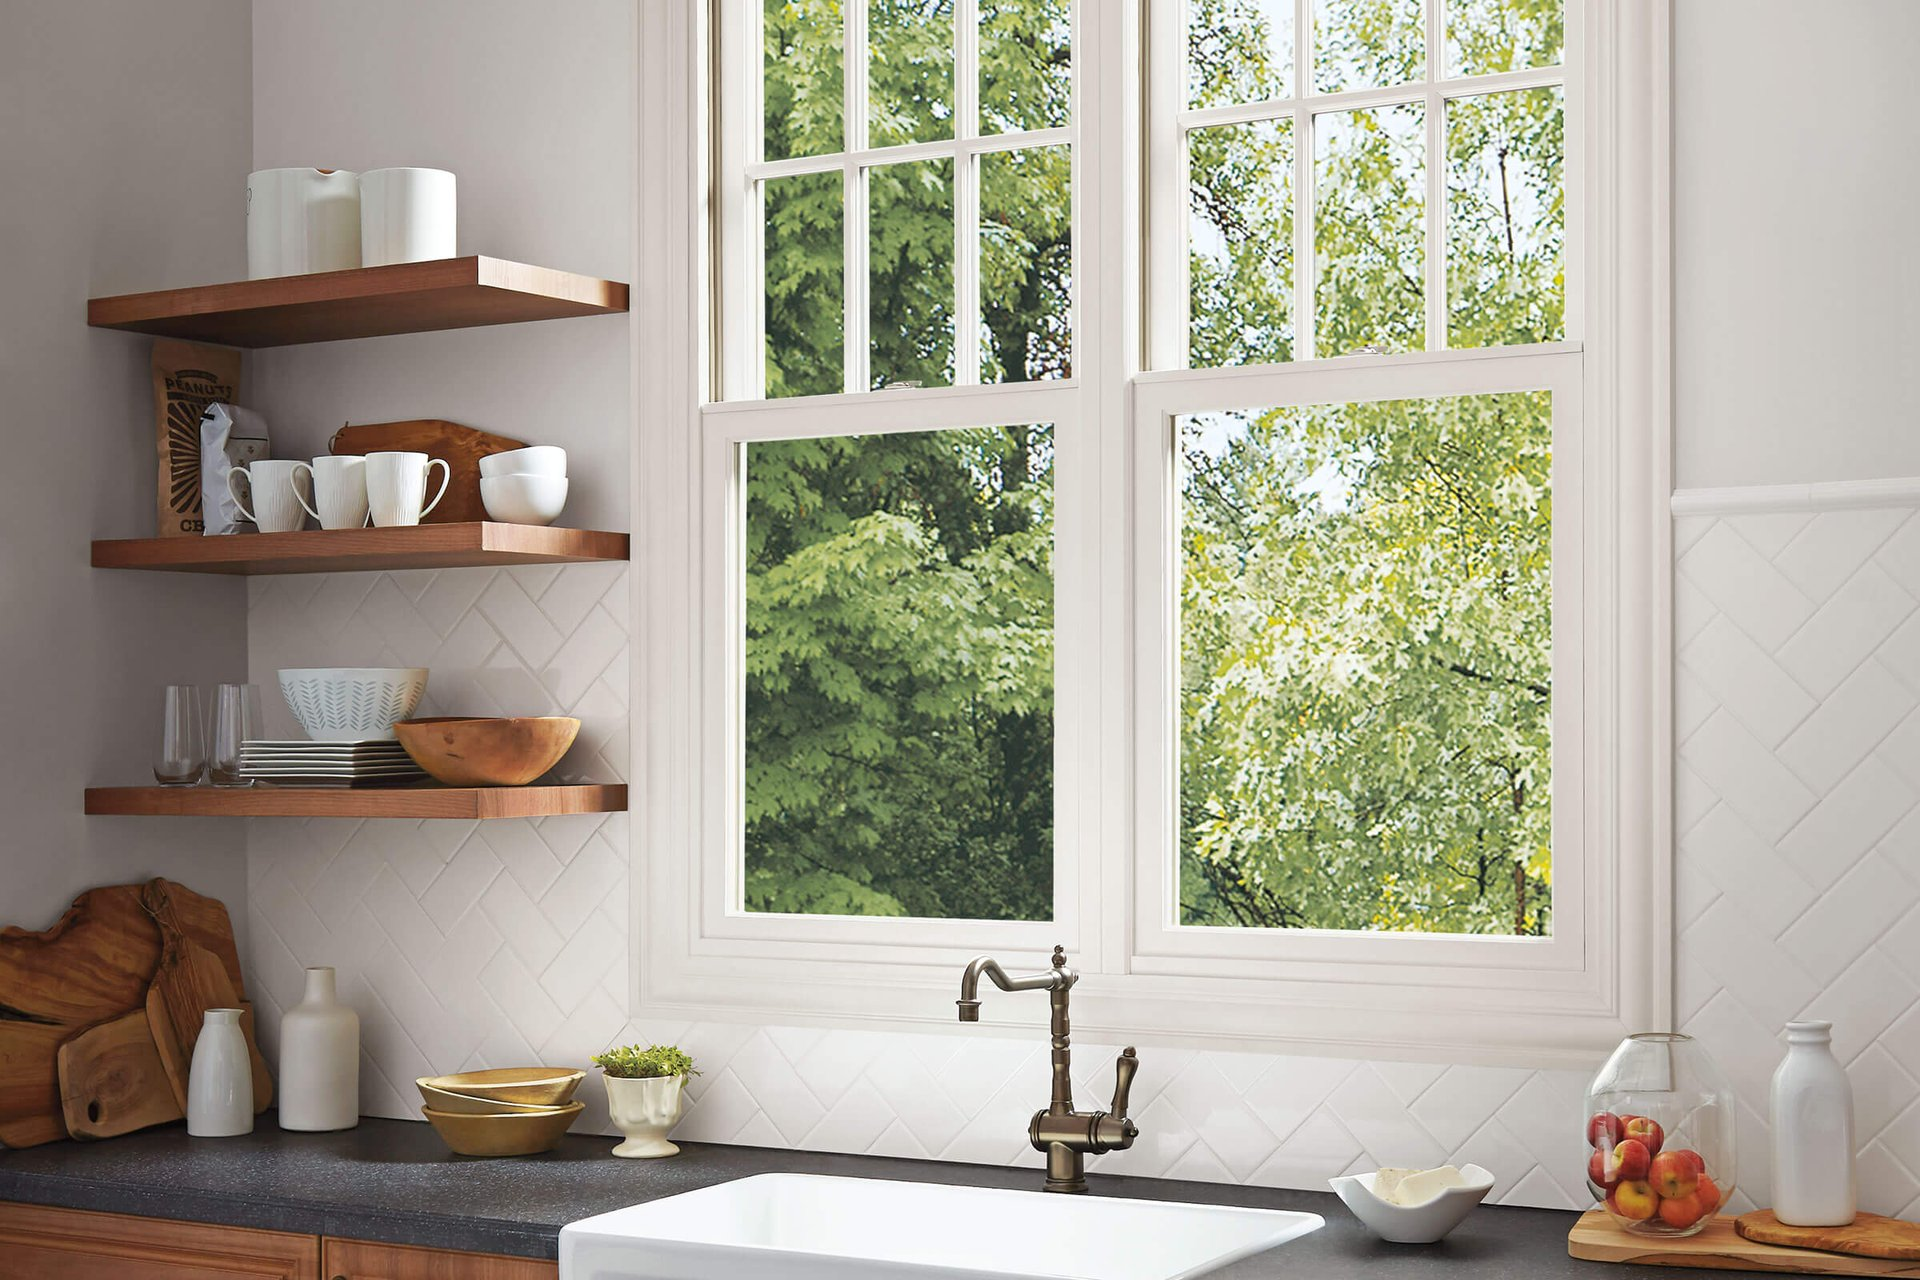 View Of Marvin Elevate Double Hung Insert Window Above Kitchen Sink